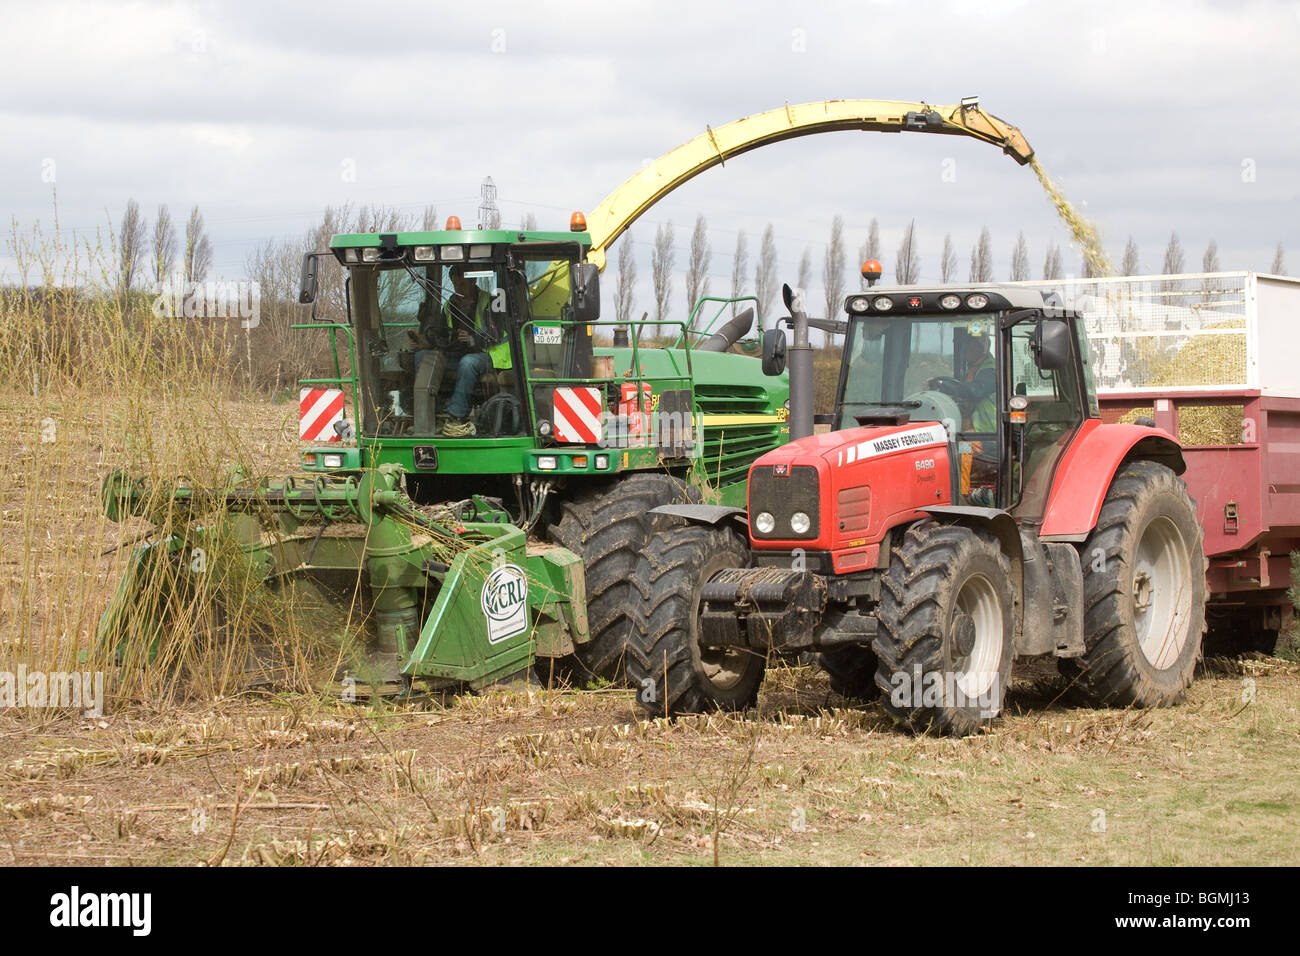 Harvesting Coppice Willow For Biomass For Power Stations In Nottinghamshire - Stock Image